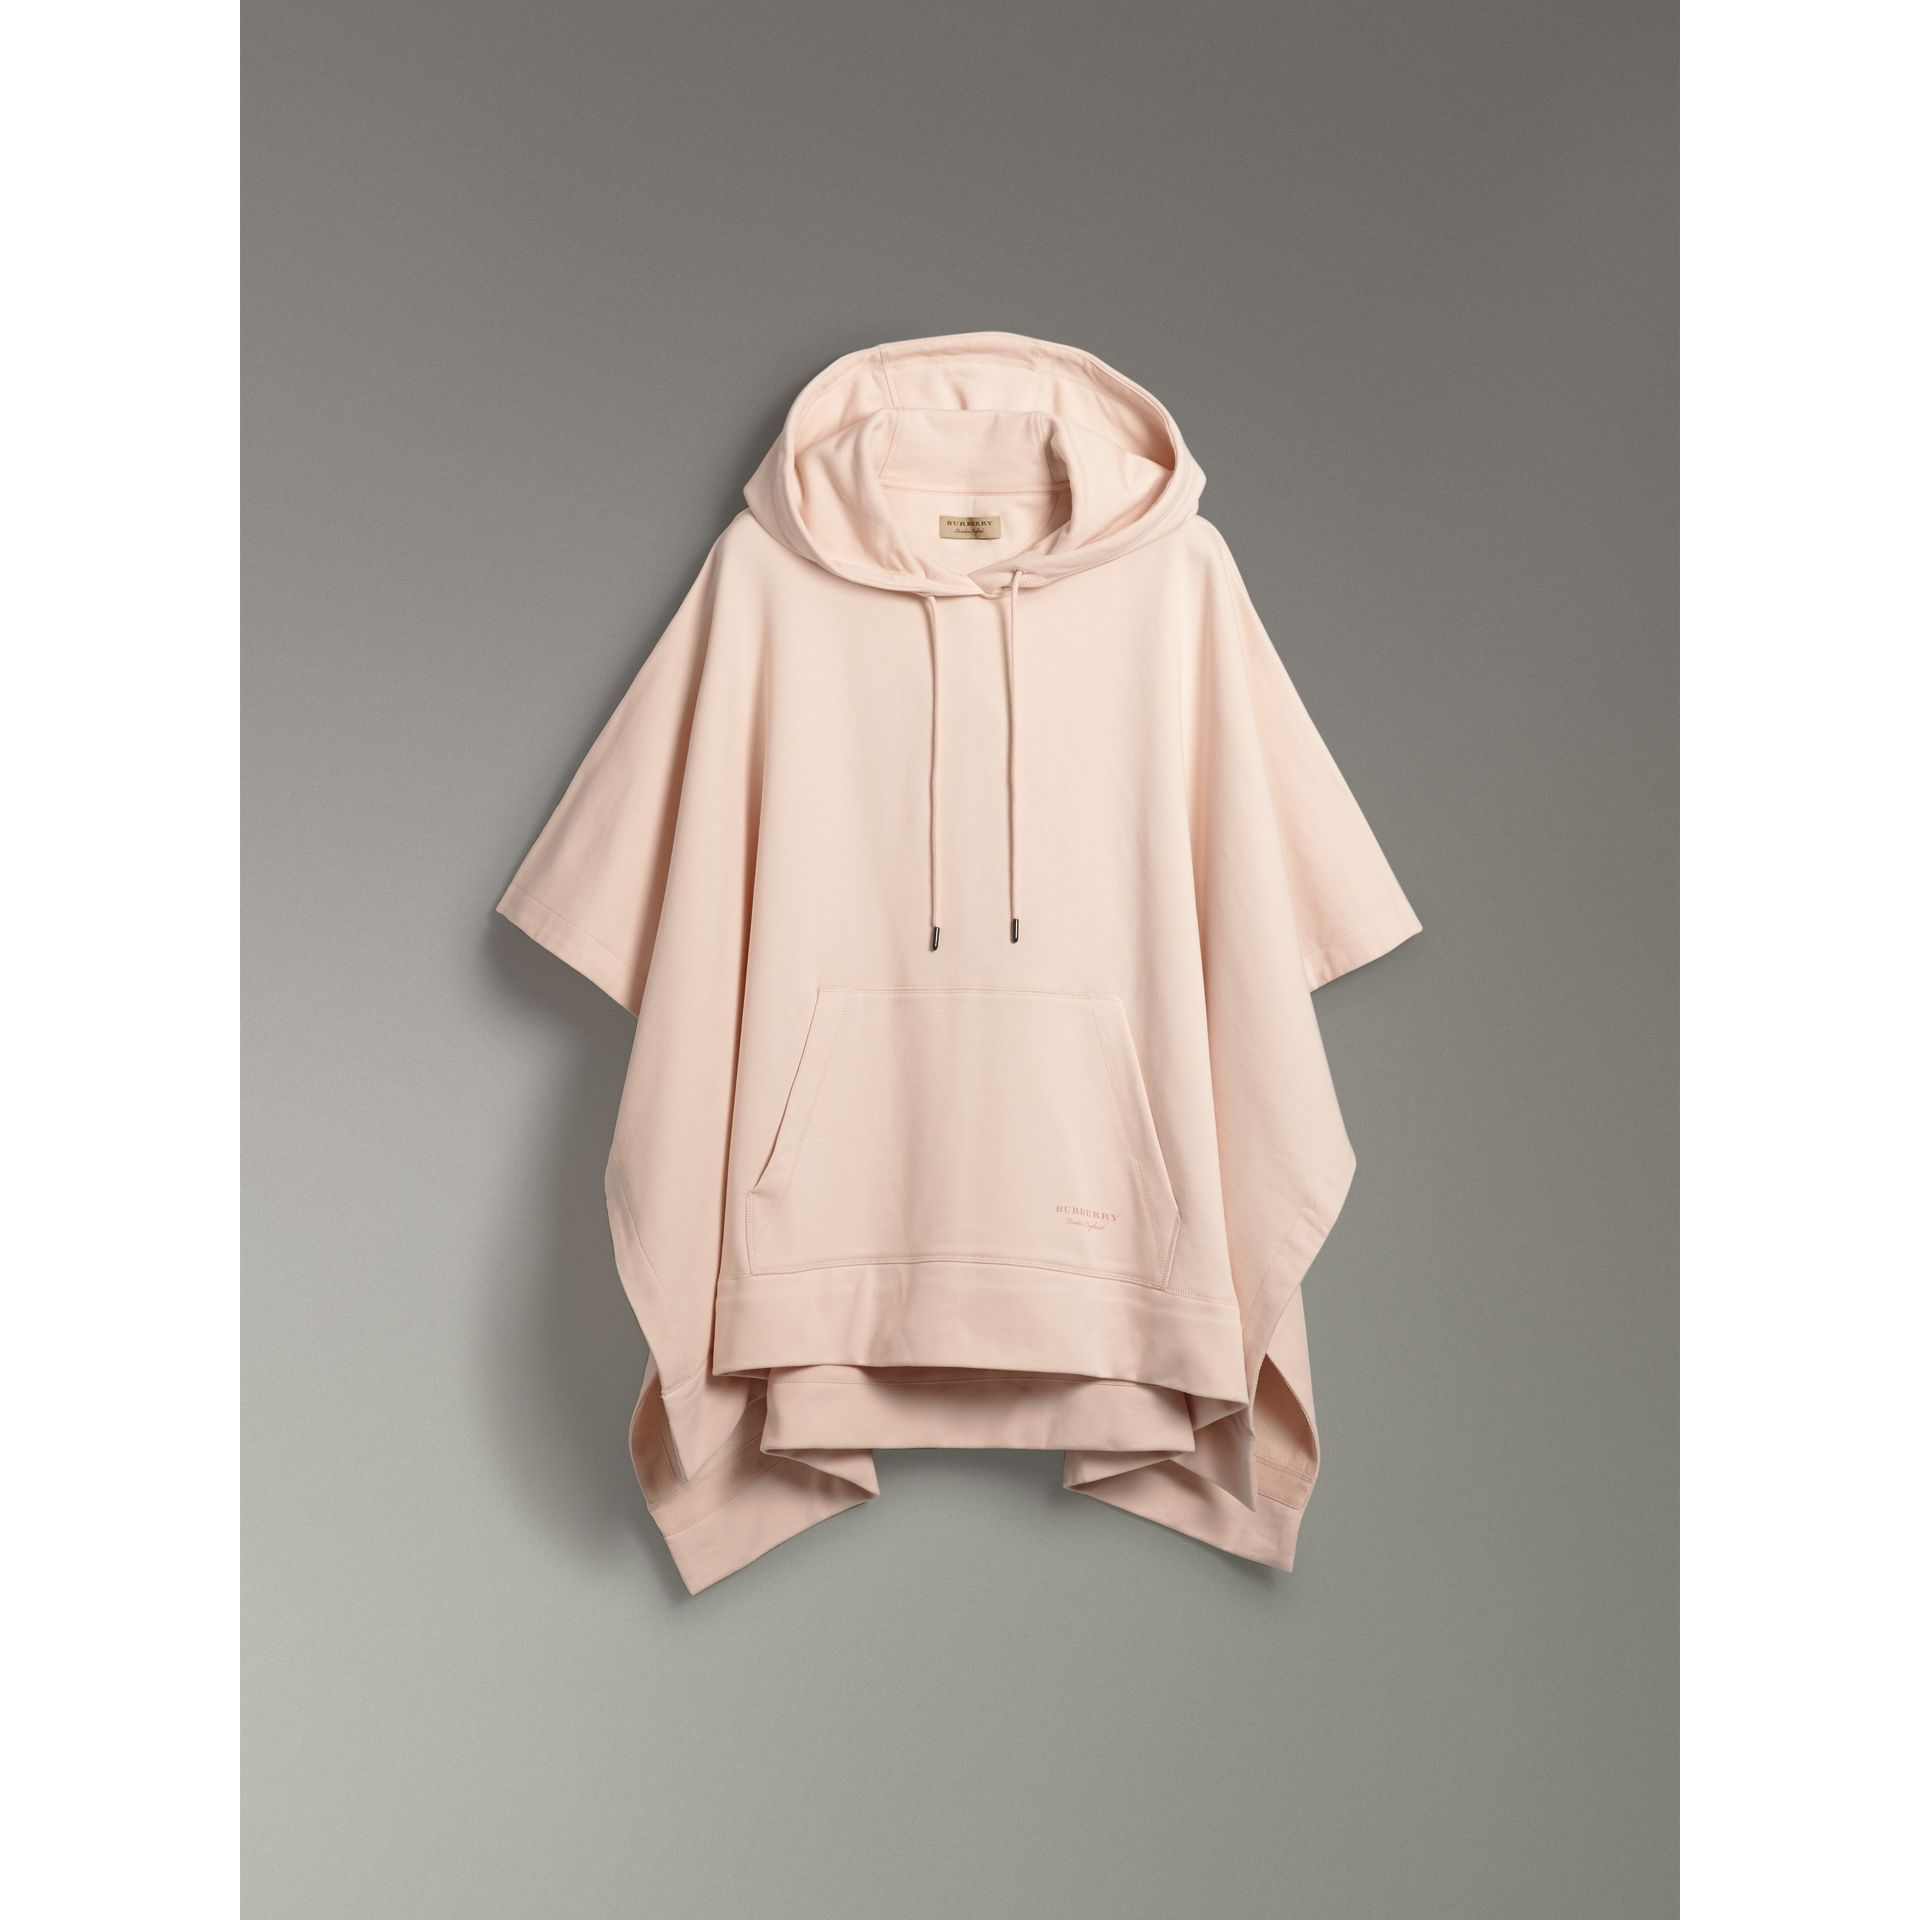 Cotton Jersey Hooded Cape in Pale Pink - Women | Burberry - gallery image 3